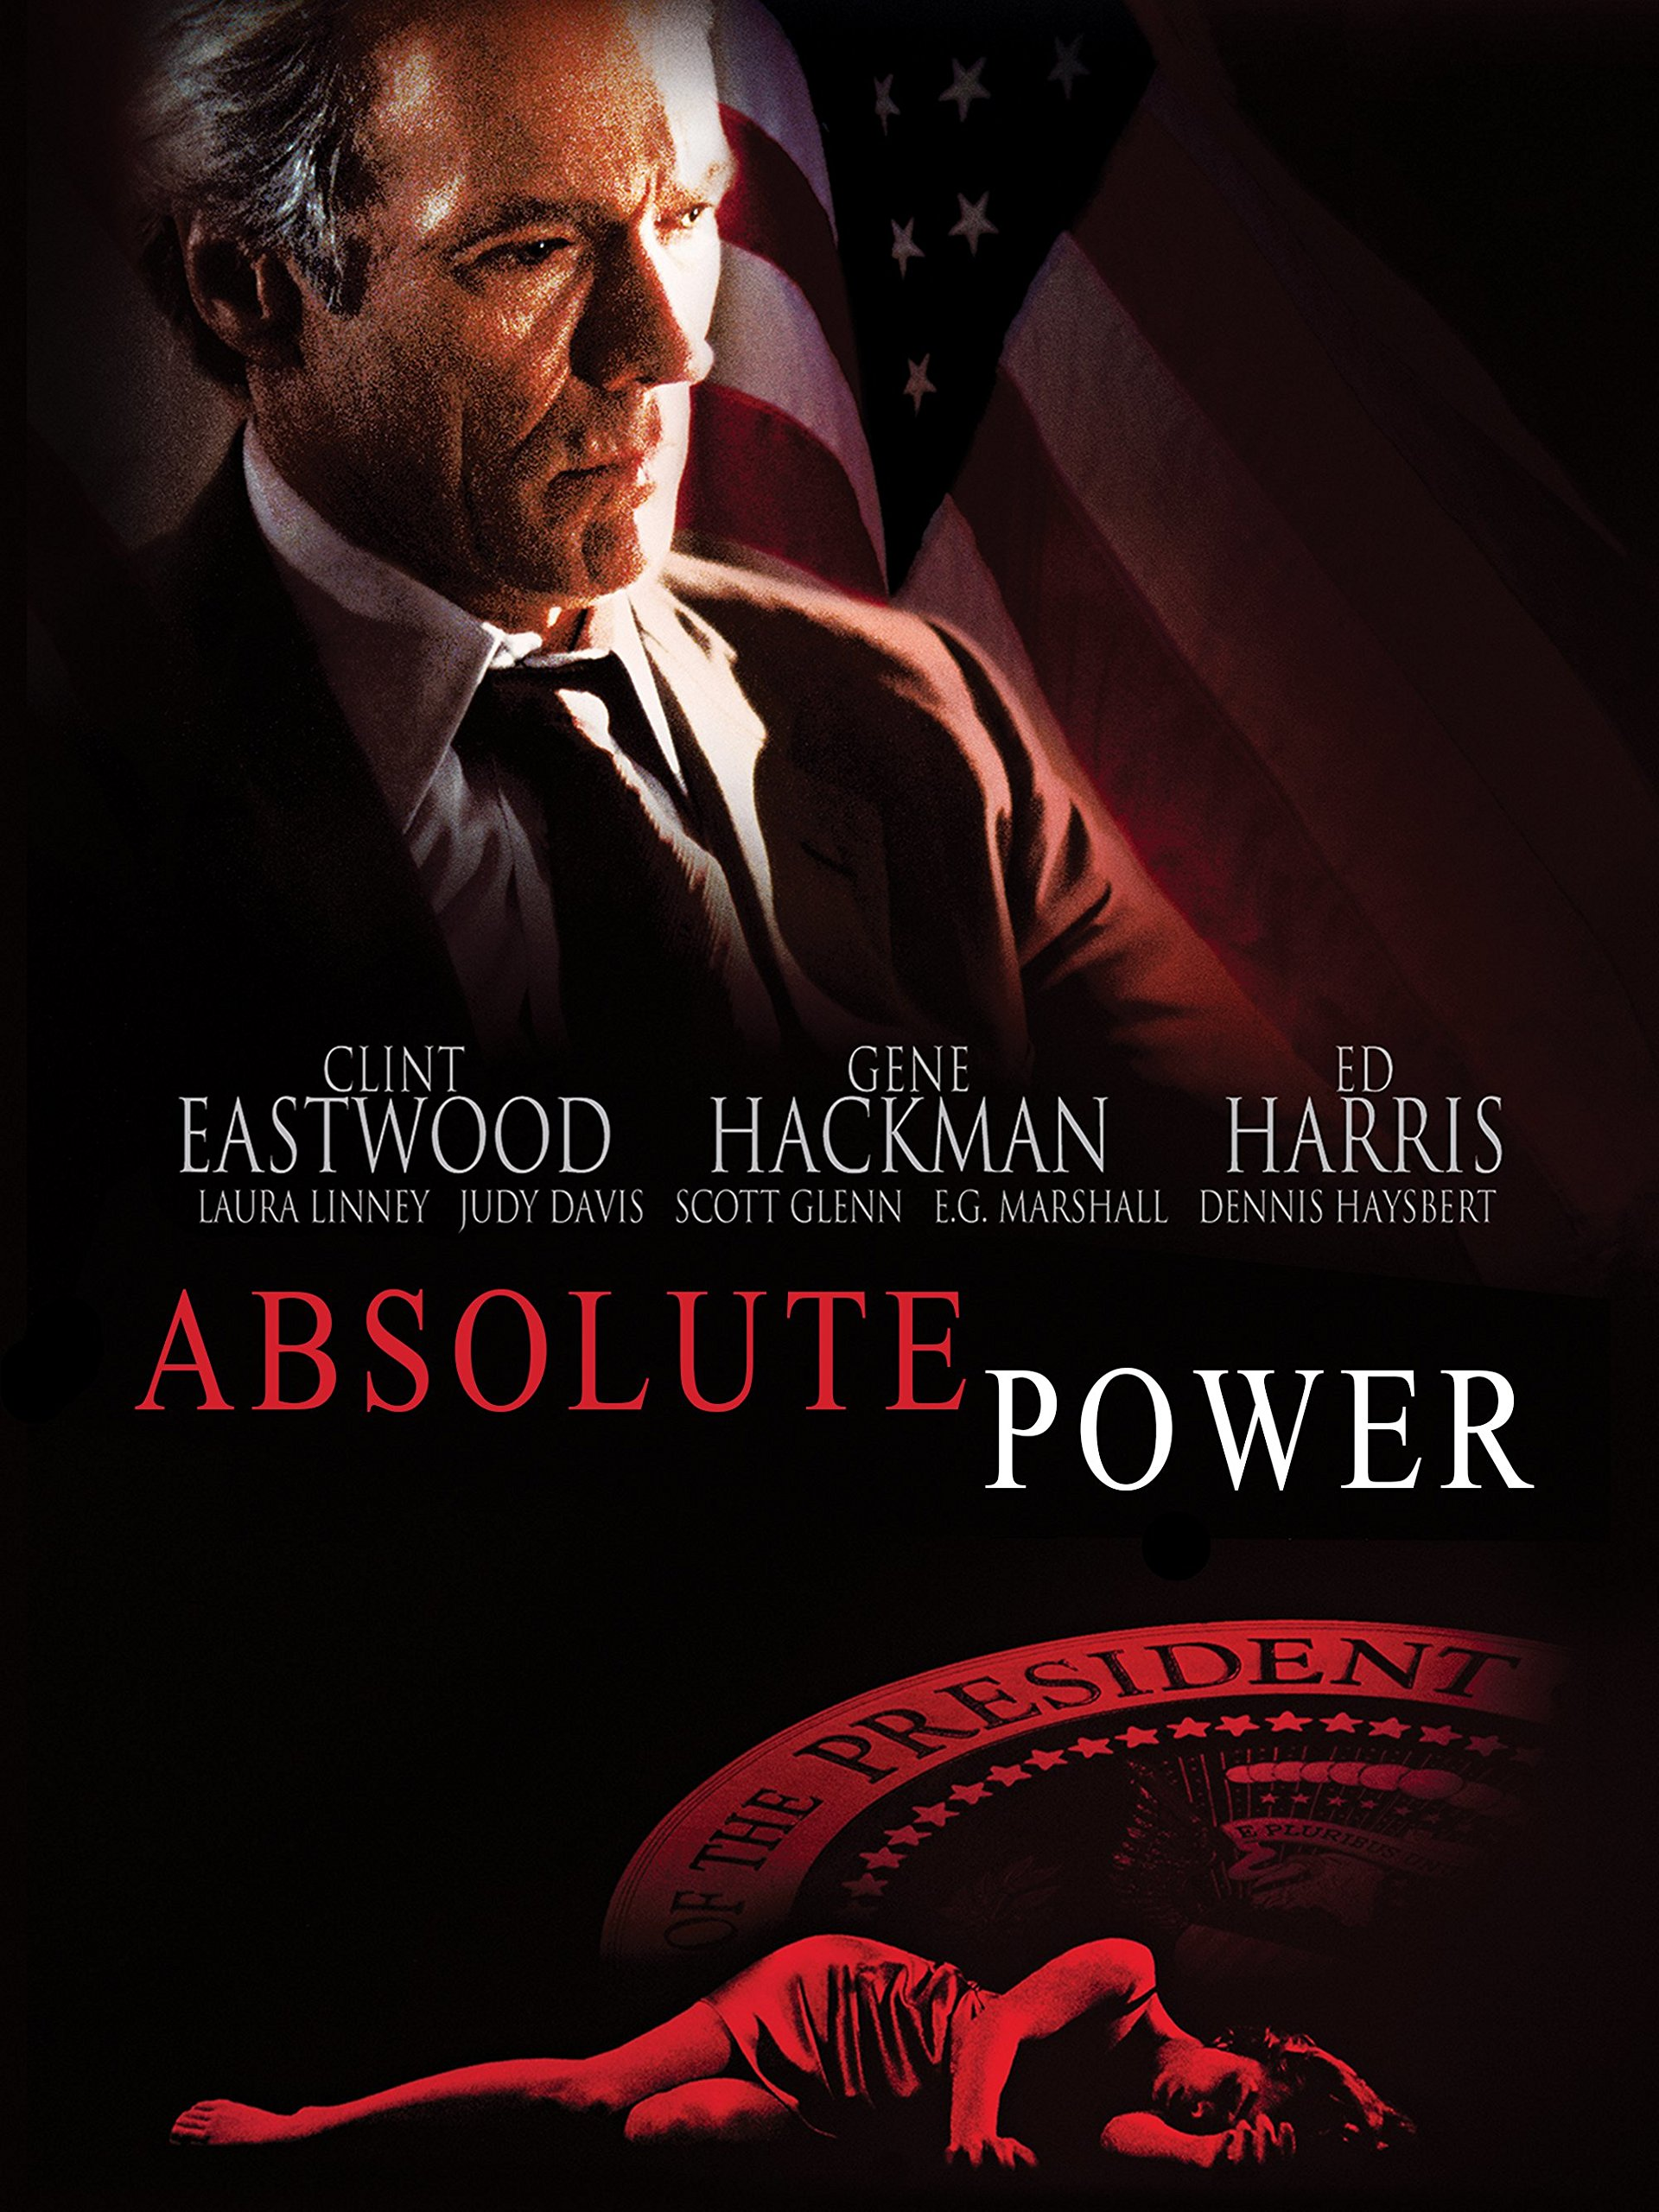 ABSOLUTE POWER!